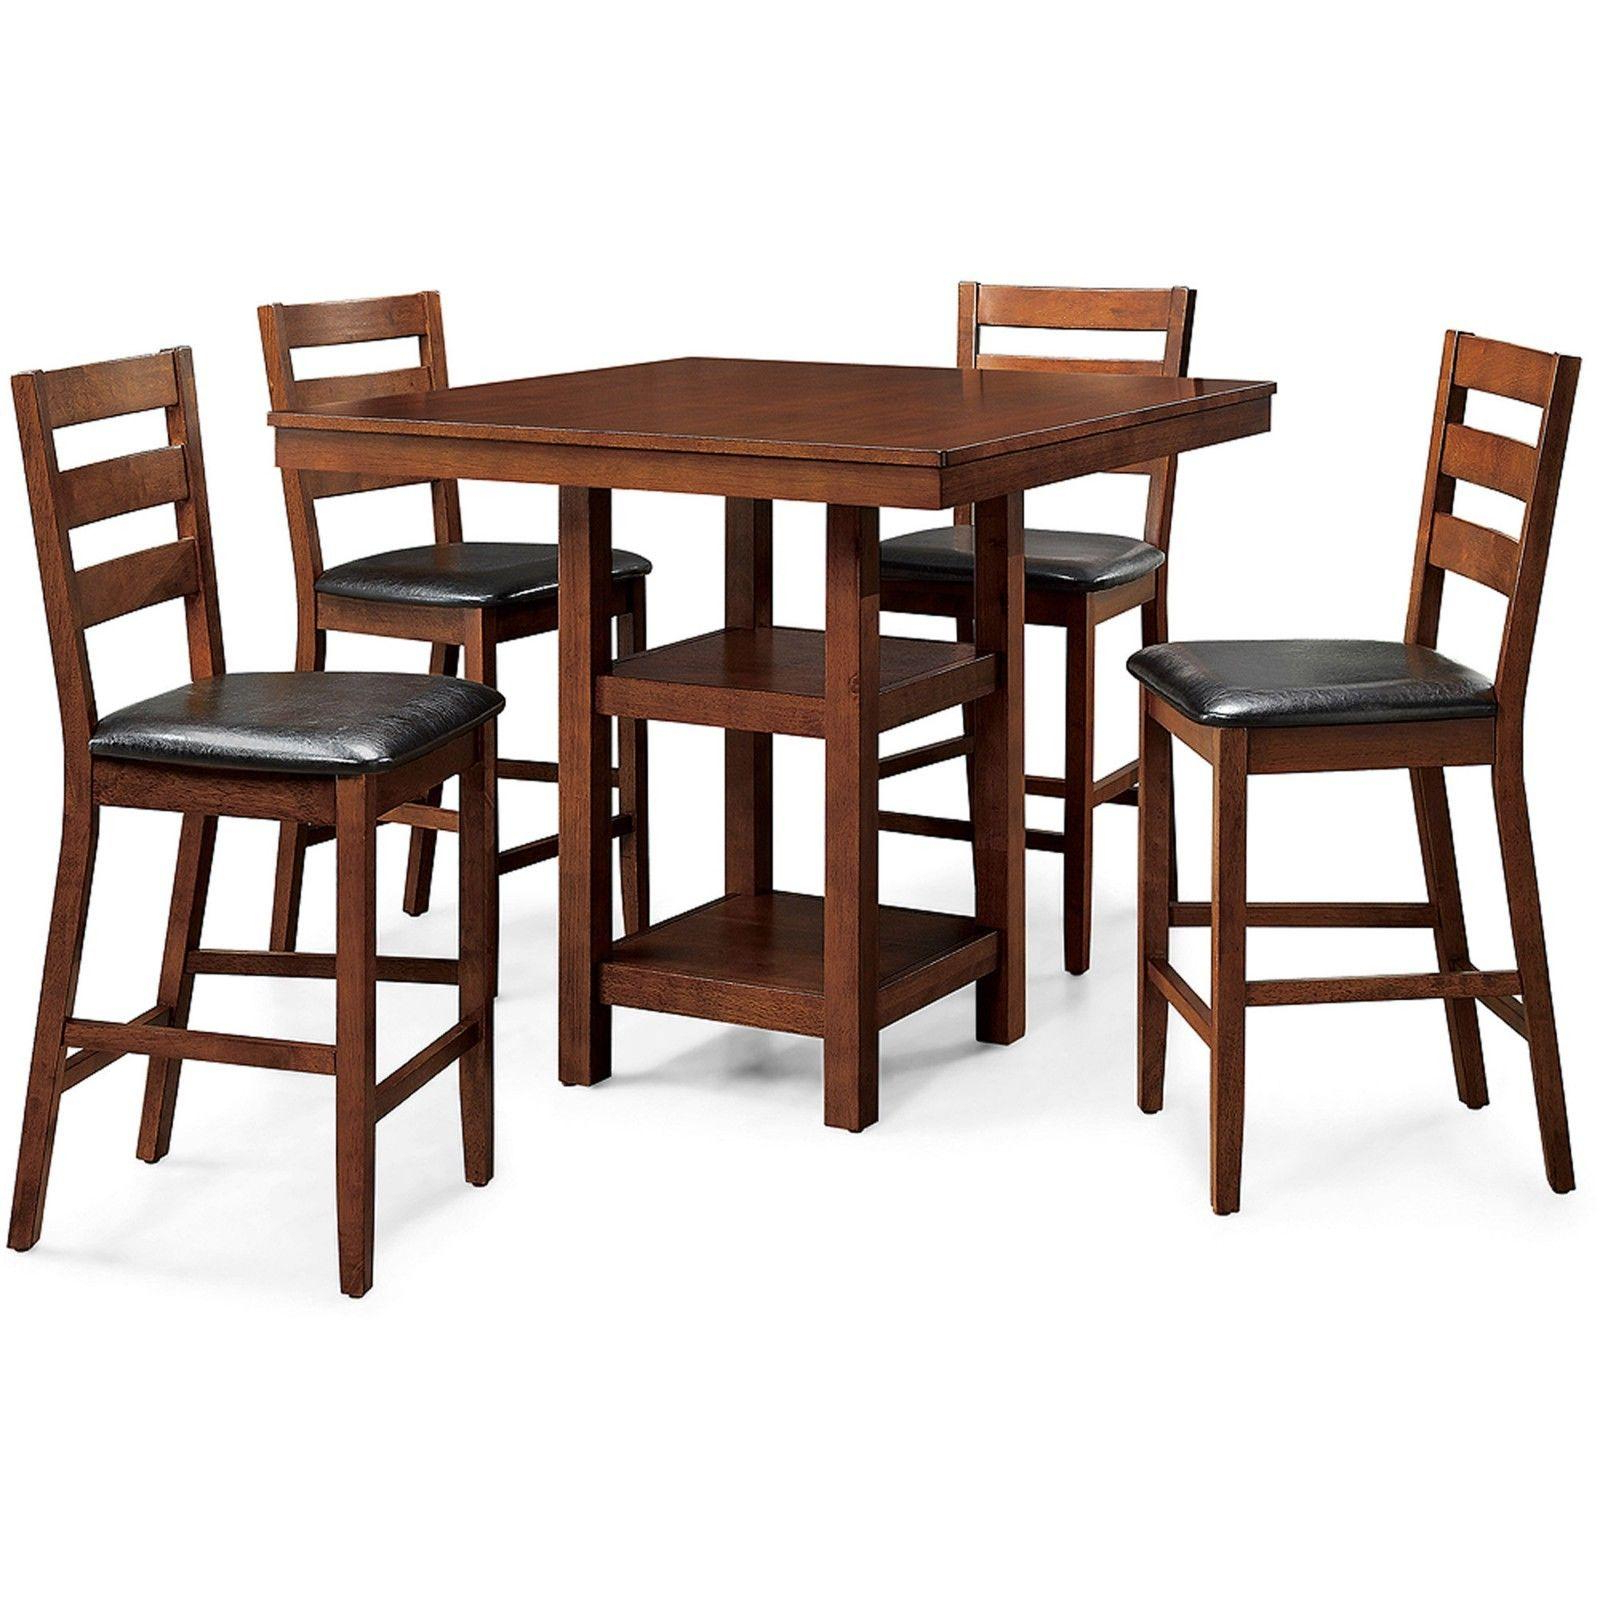 Ligon 3 Piece Breakfast Nook Dining Sets Intended For Most Popular Counter Height Dining Table Set W/ 4 Hig (View 15 of 20)